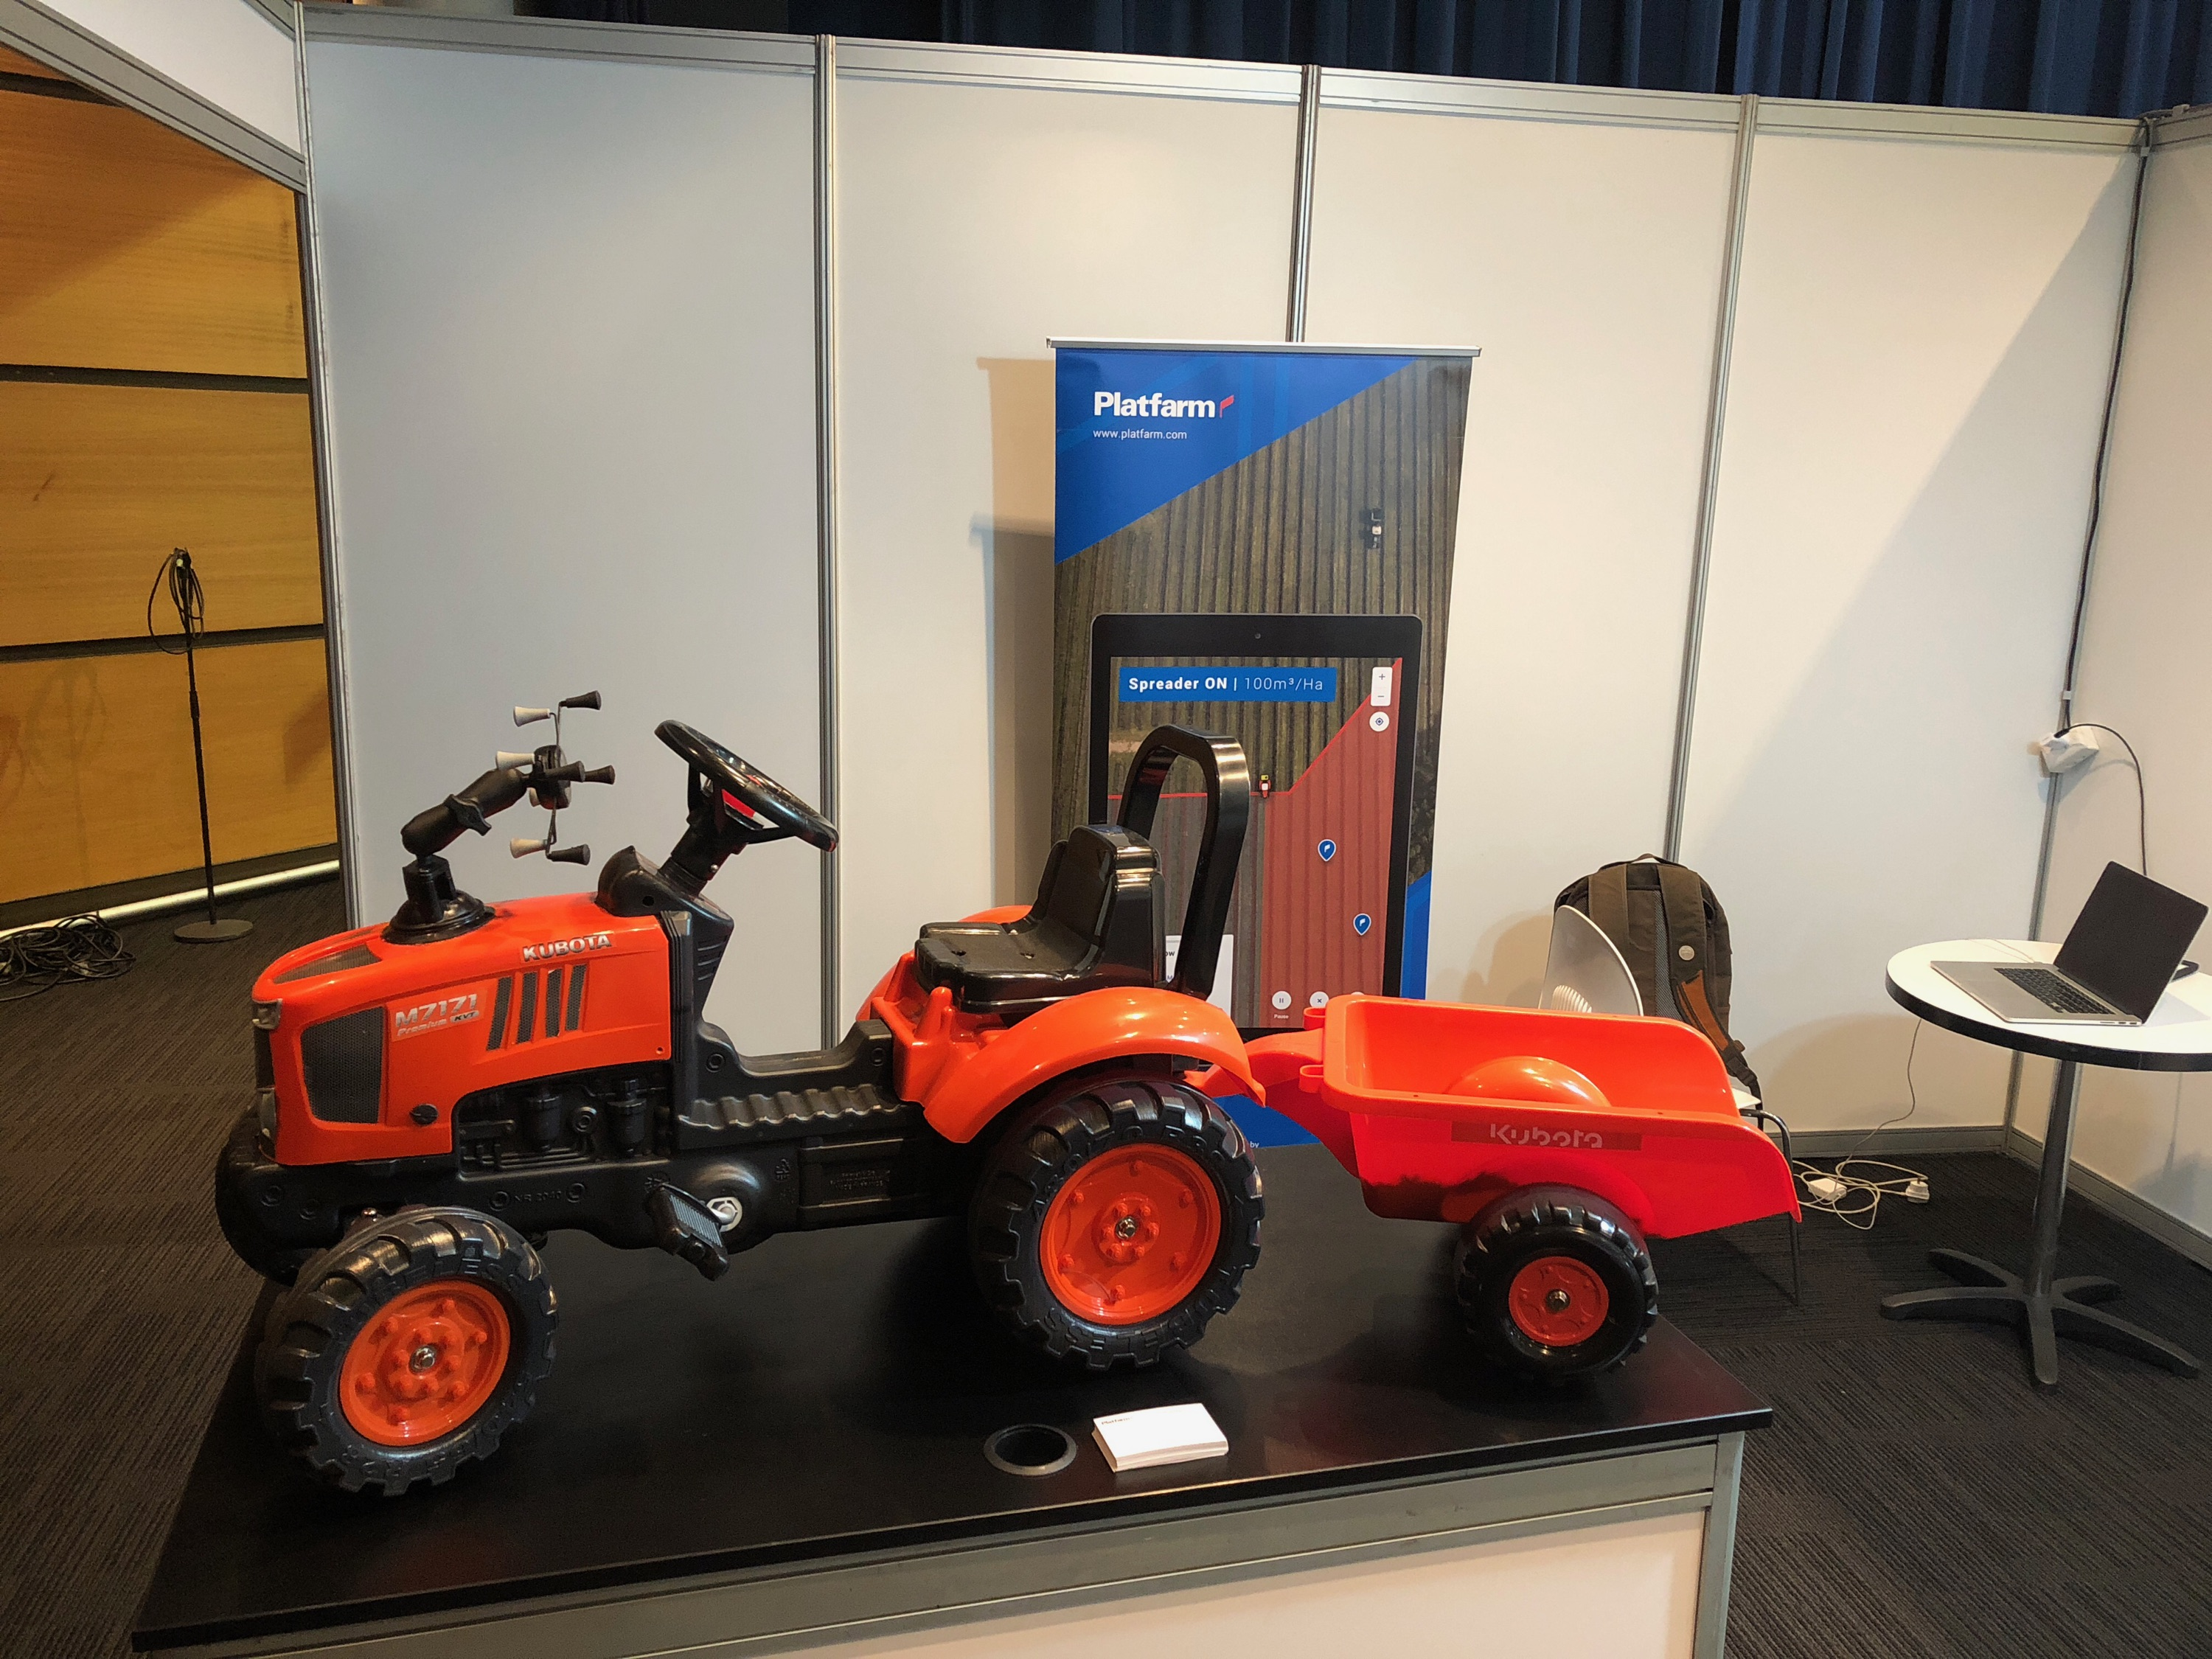 red mini tractor with demonstration platform device holder